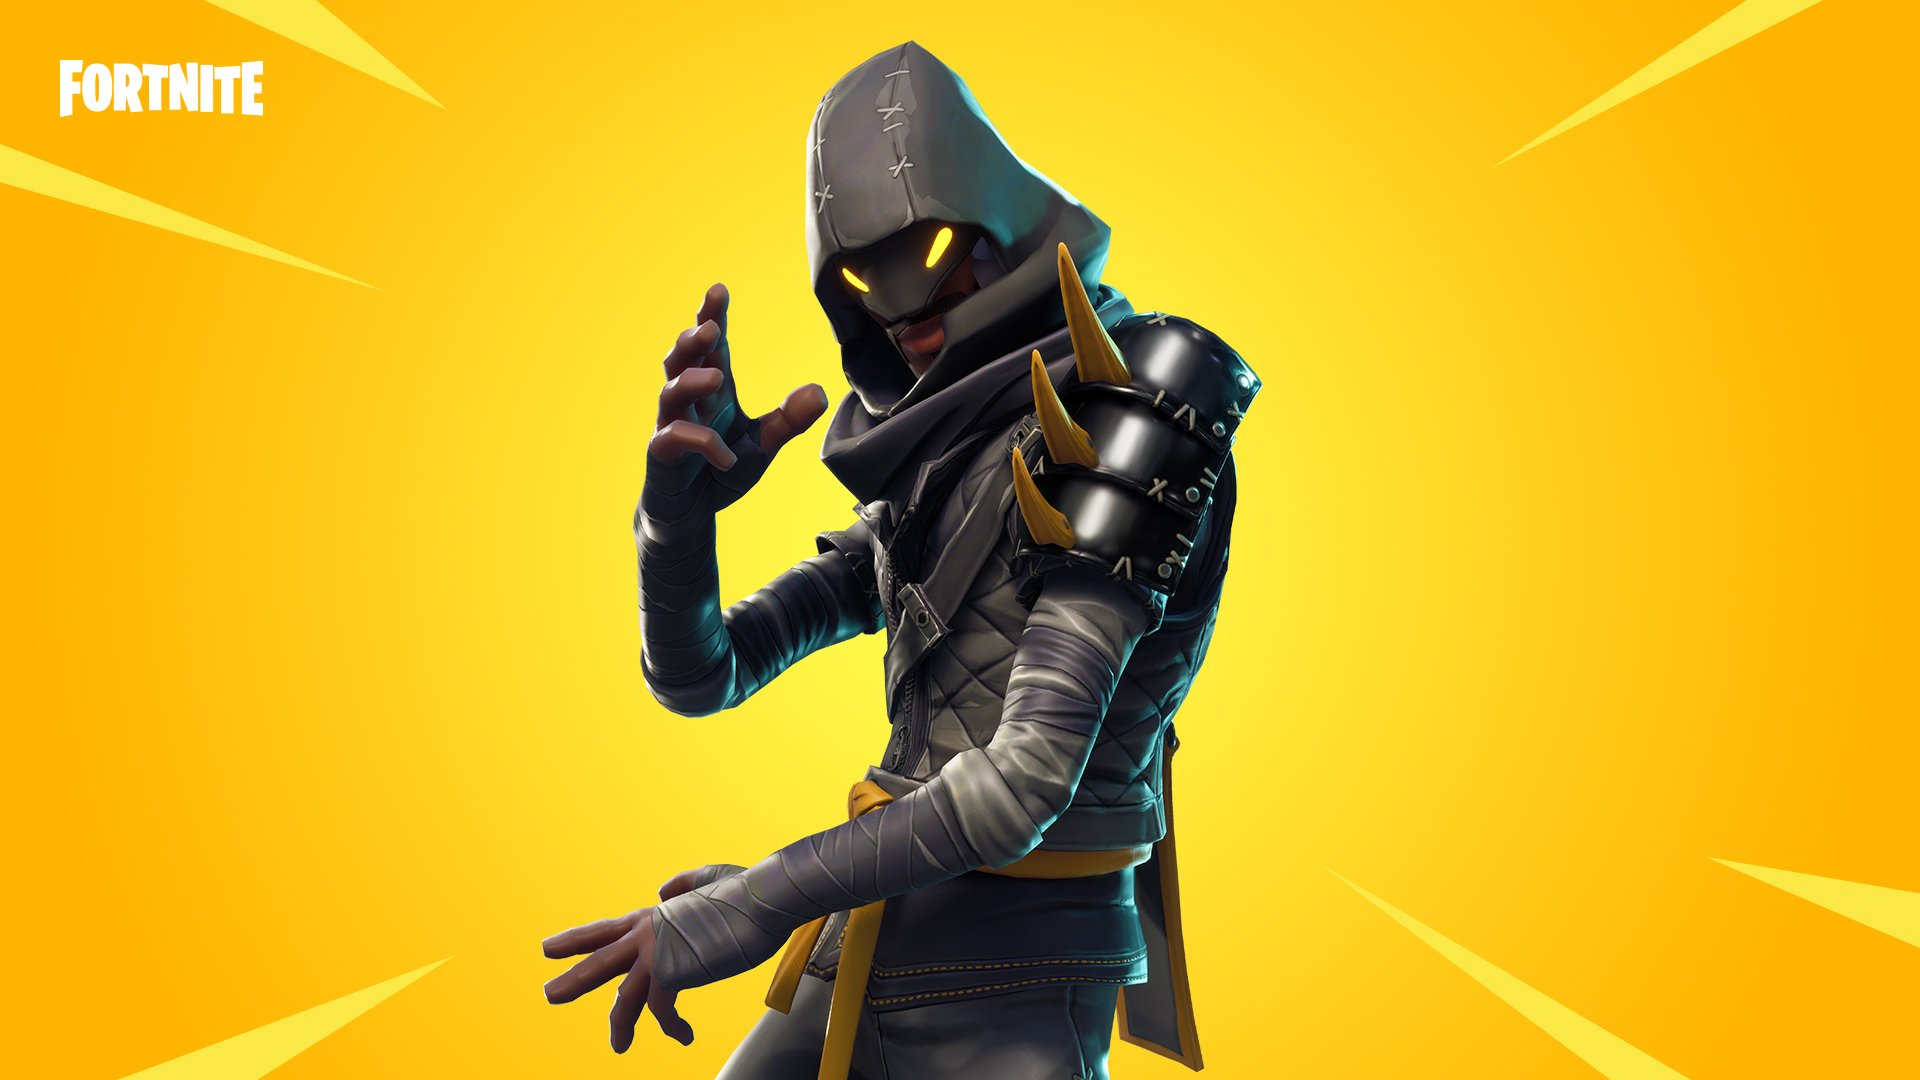 Fortnite On Twitter Cloaked In Mystery The New Cloaked Star